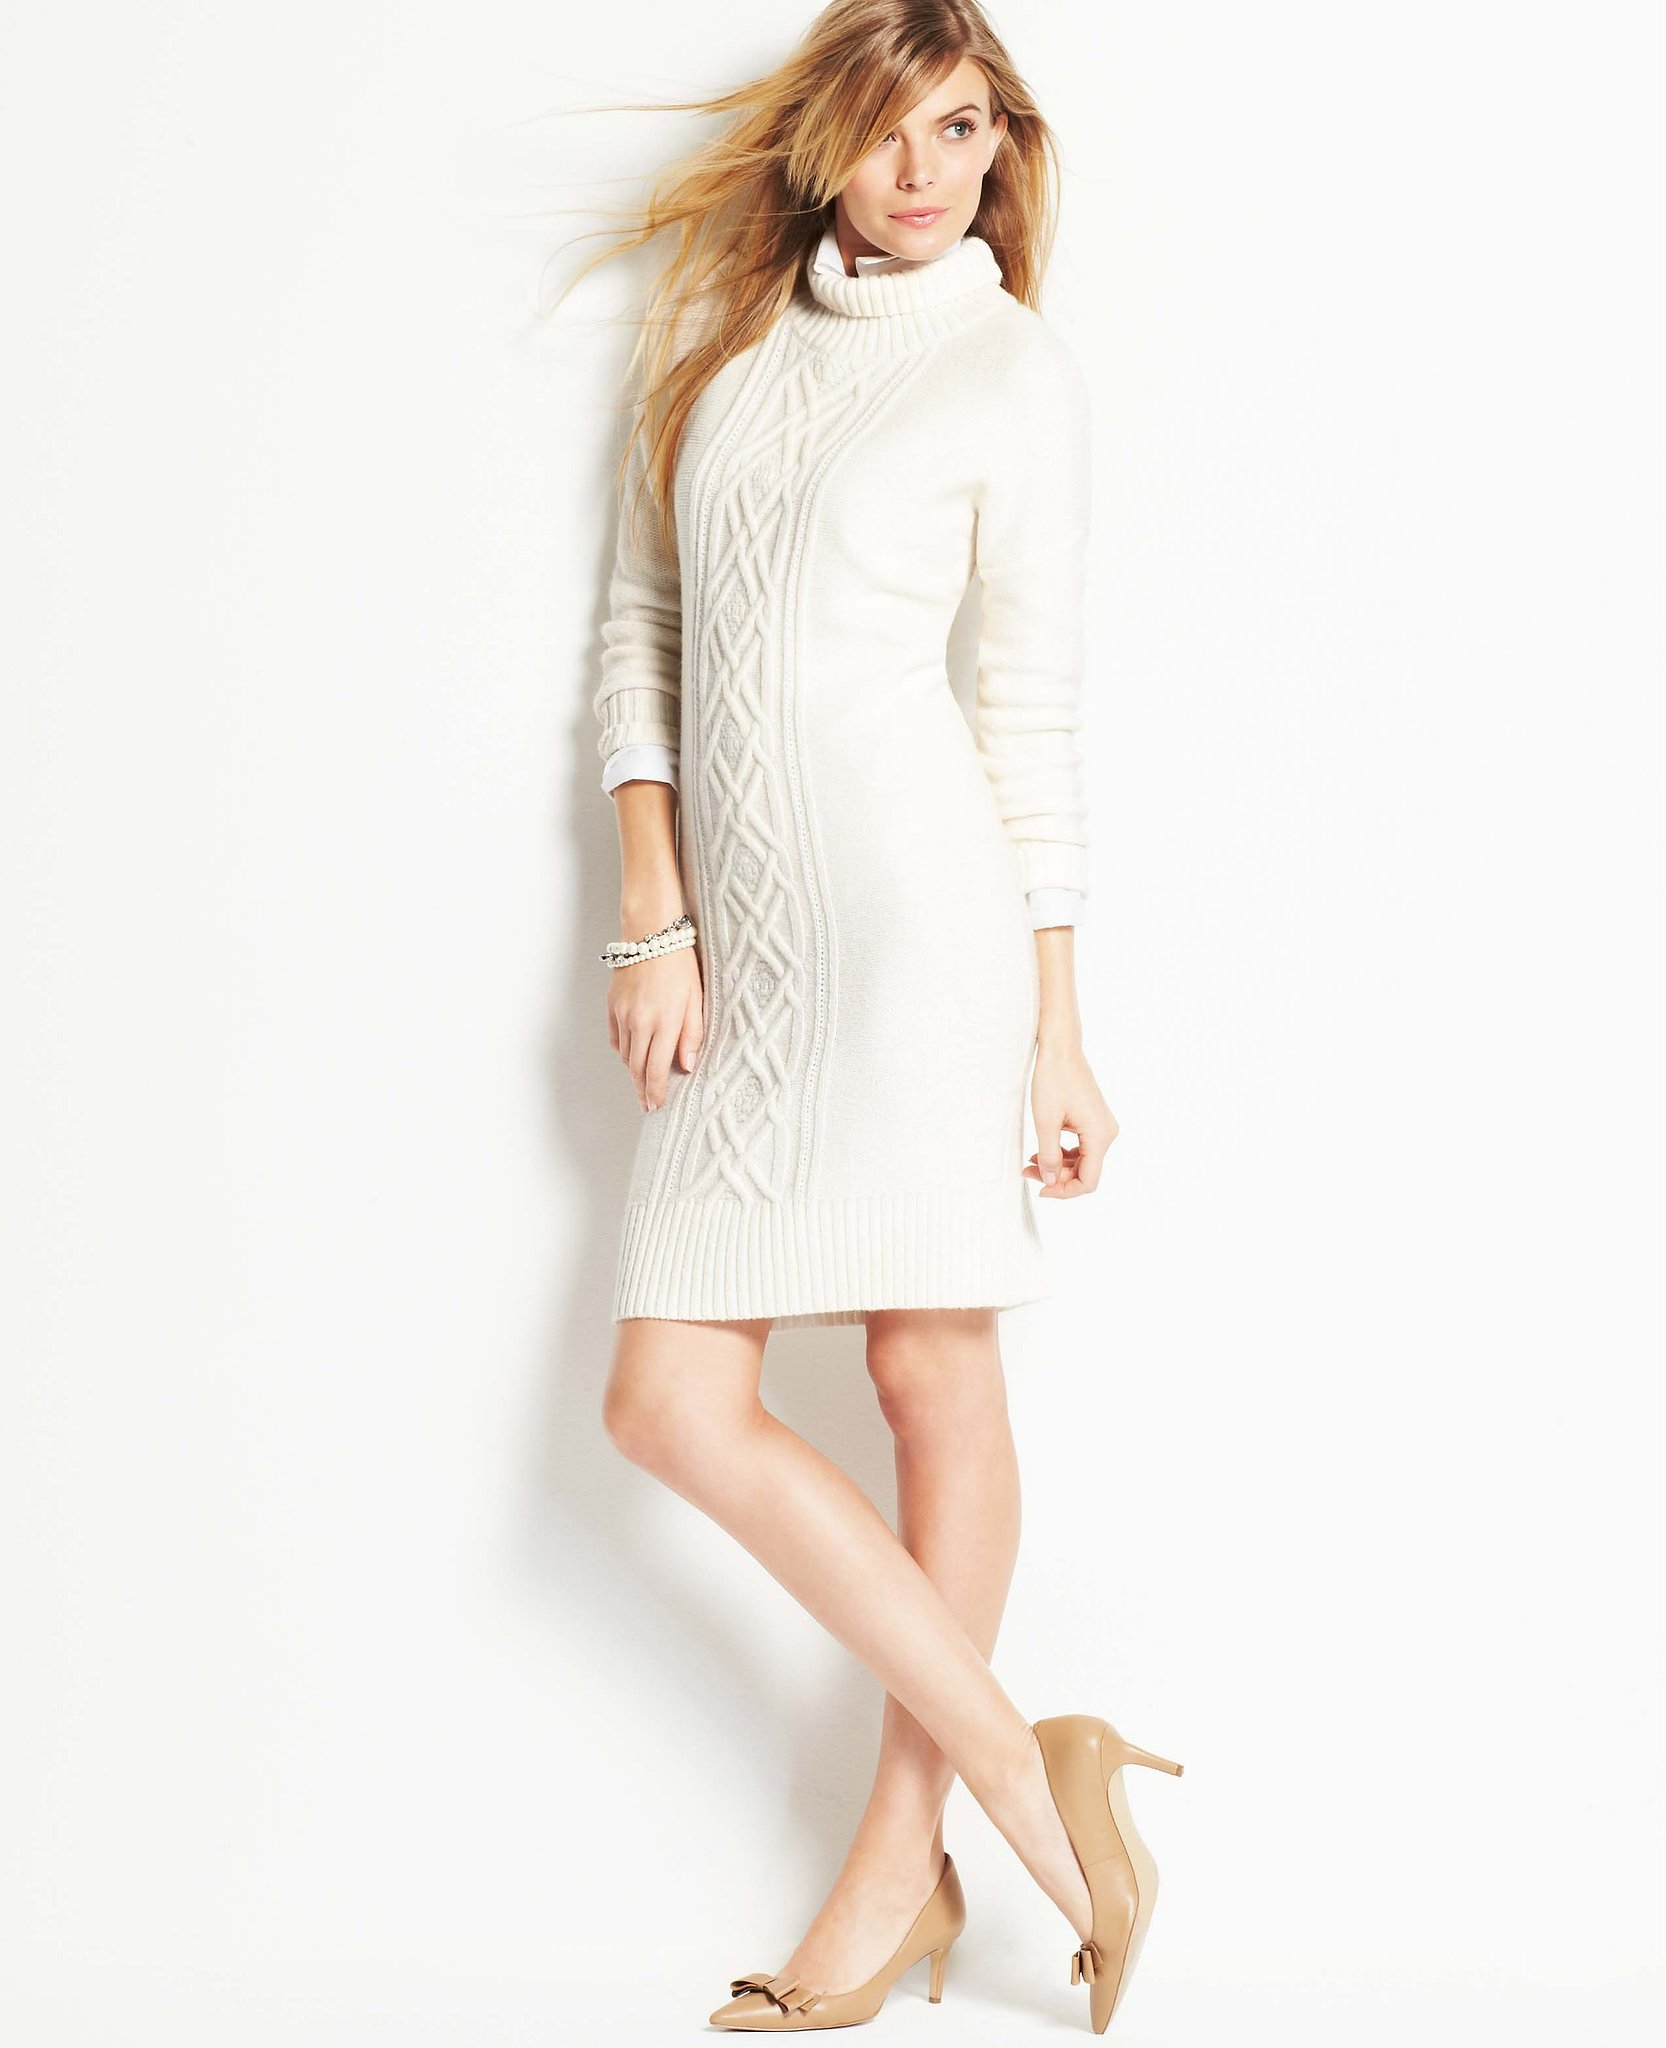 The next step for someone who loves an oversize, chunky sweater? A sweater dress with the same vibe. I'd wear this Ann Taylor style